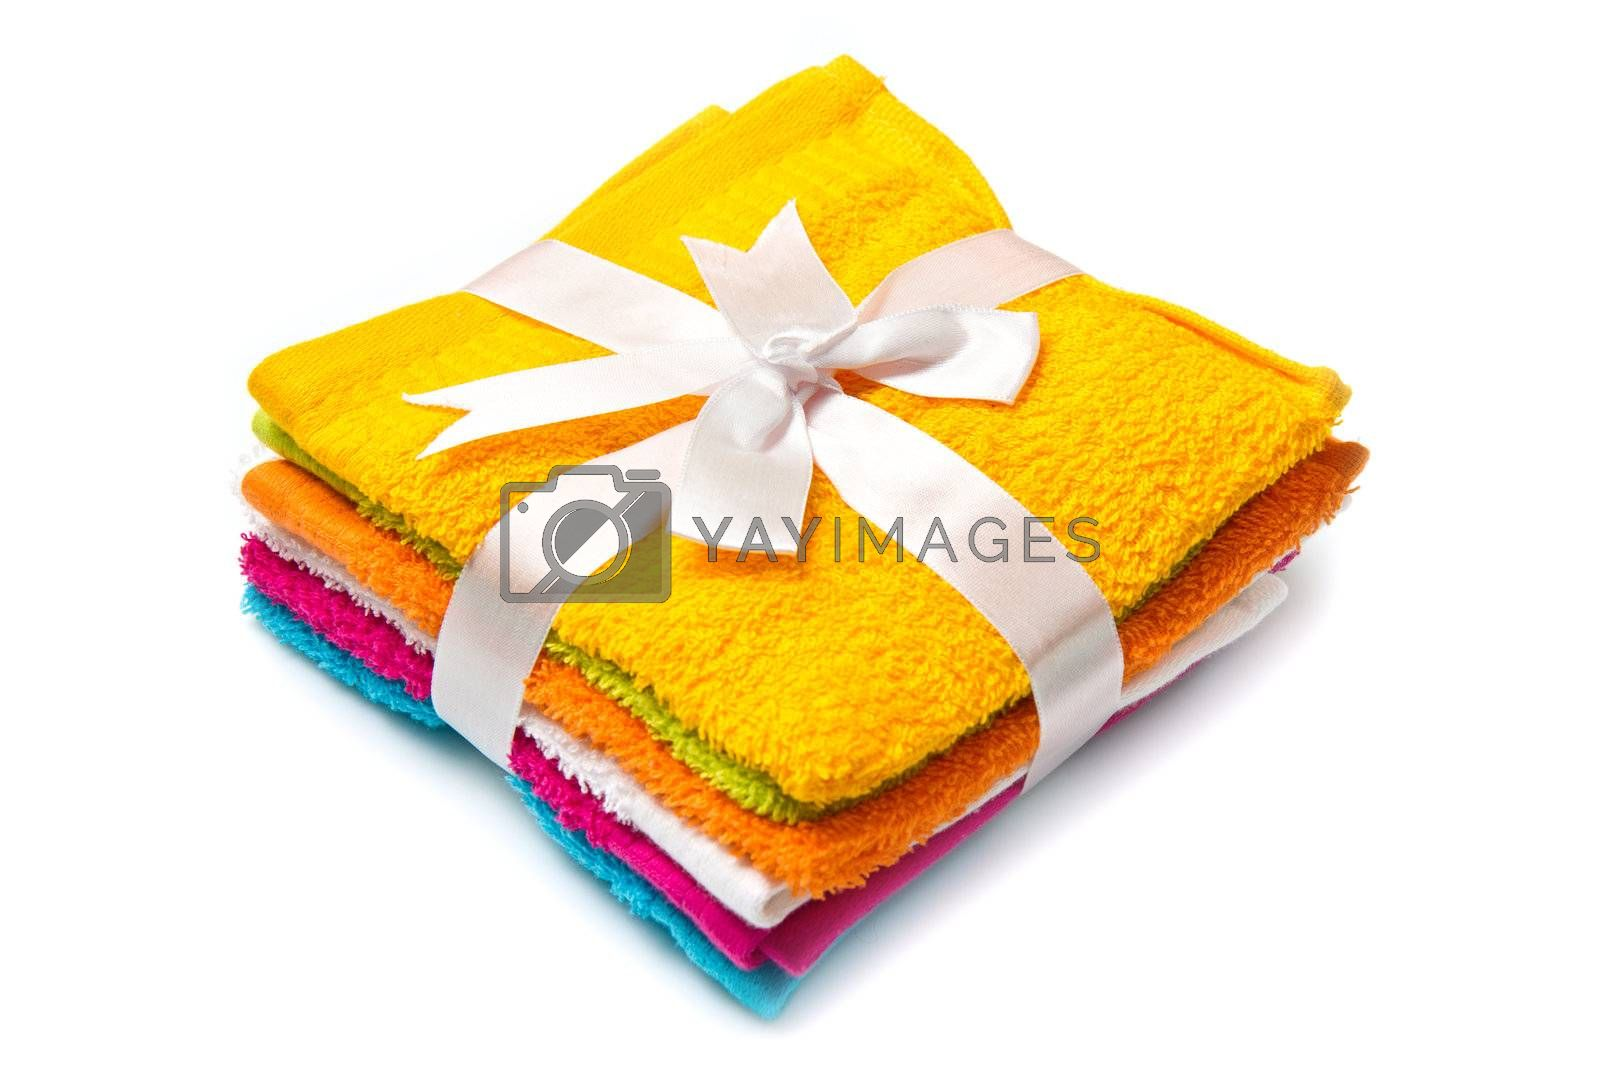 a group of colored towels on white background